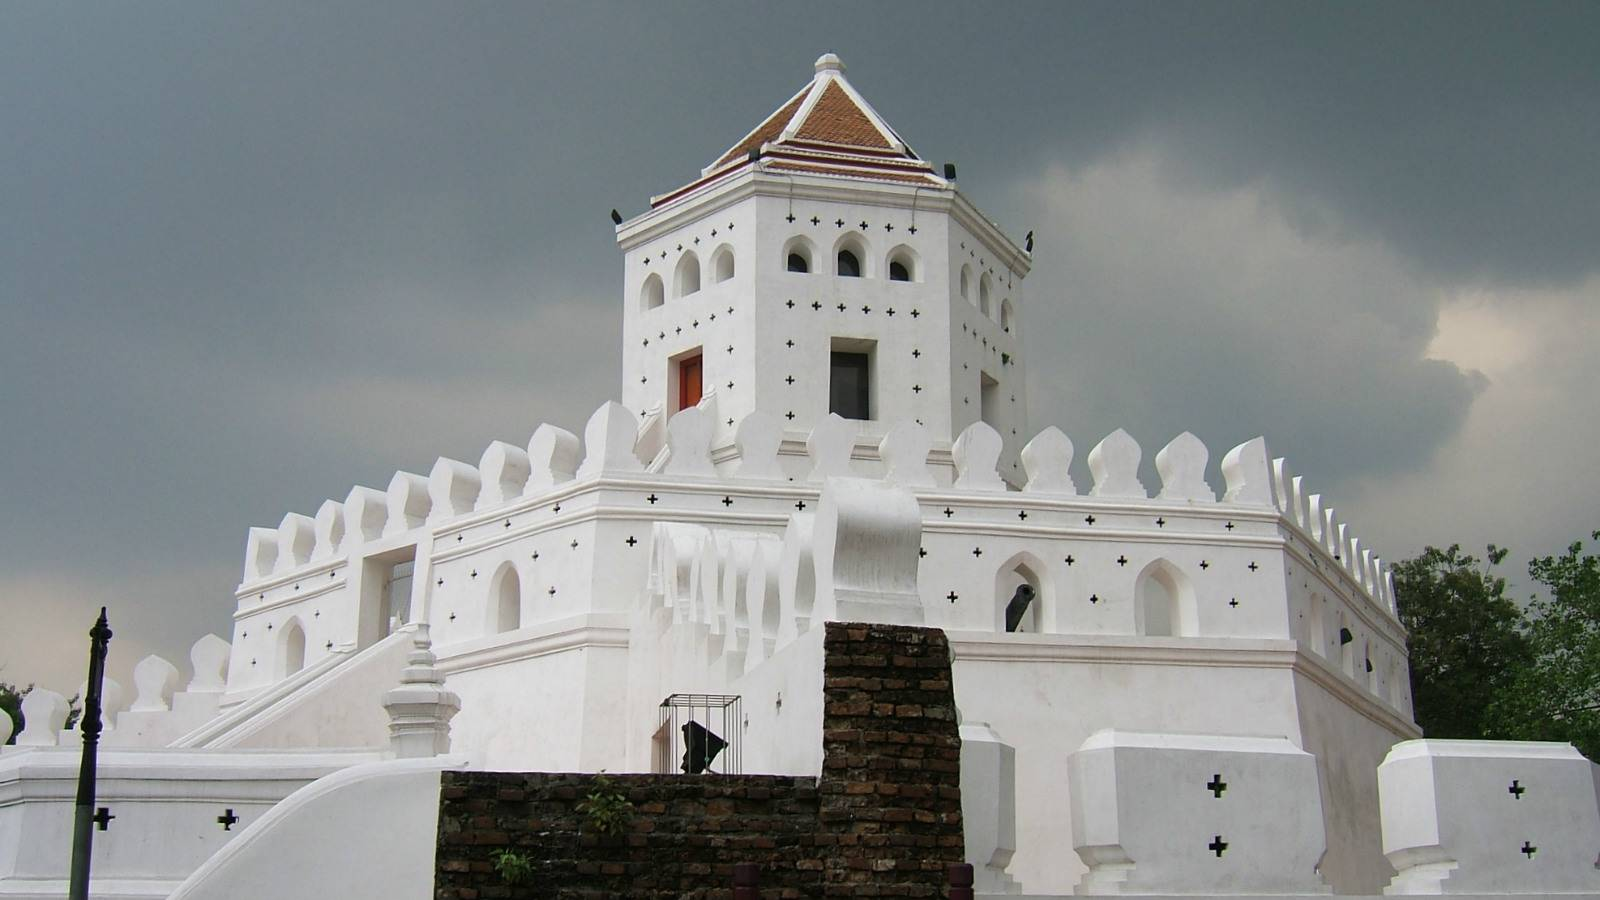 Phra Sumen Fort, old white fortress